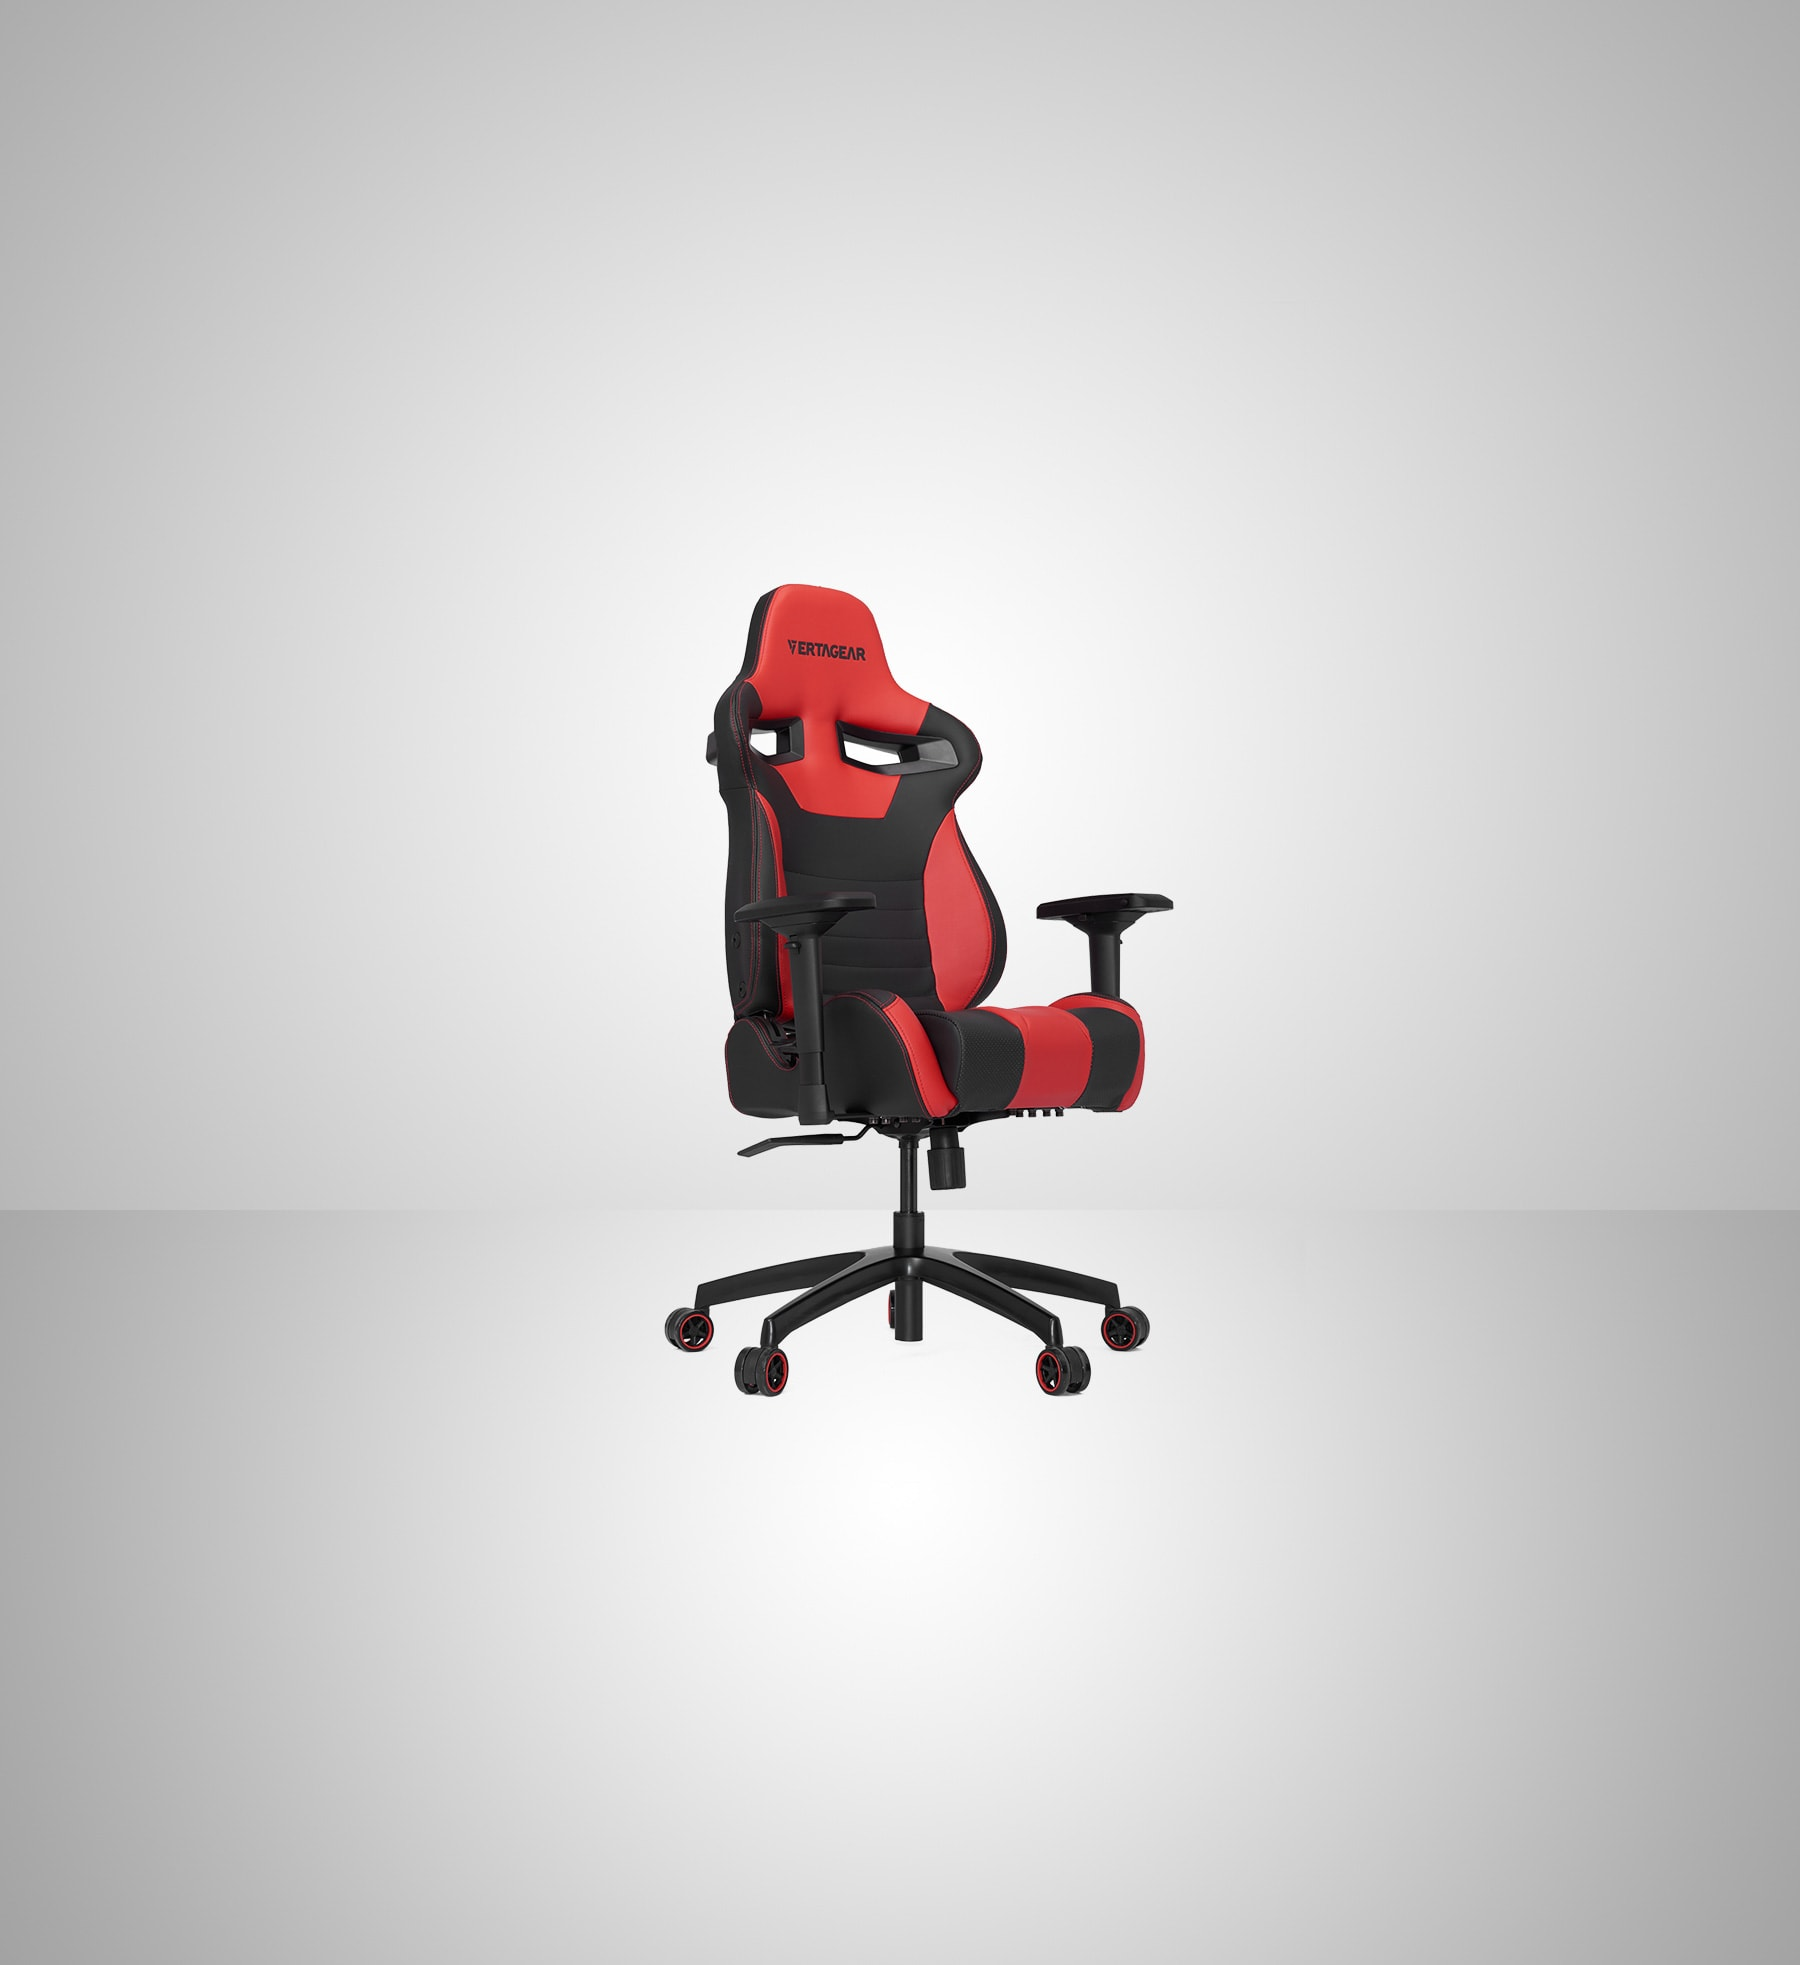 how much does a gaming chair weight counter high table and chairs set vertagear racing series sl4000 patent pending slide in design mechanical structure that requires no more than one person to assemble specifications